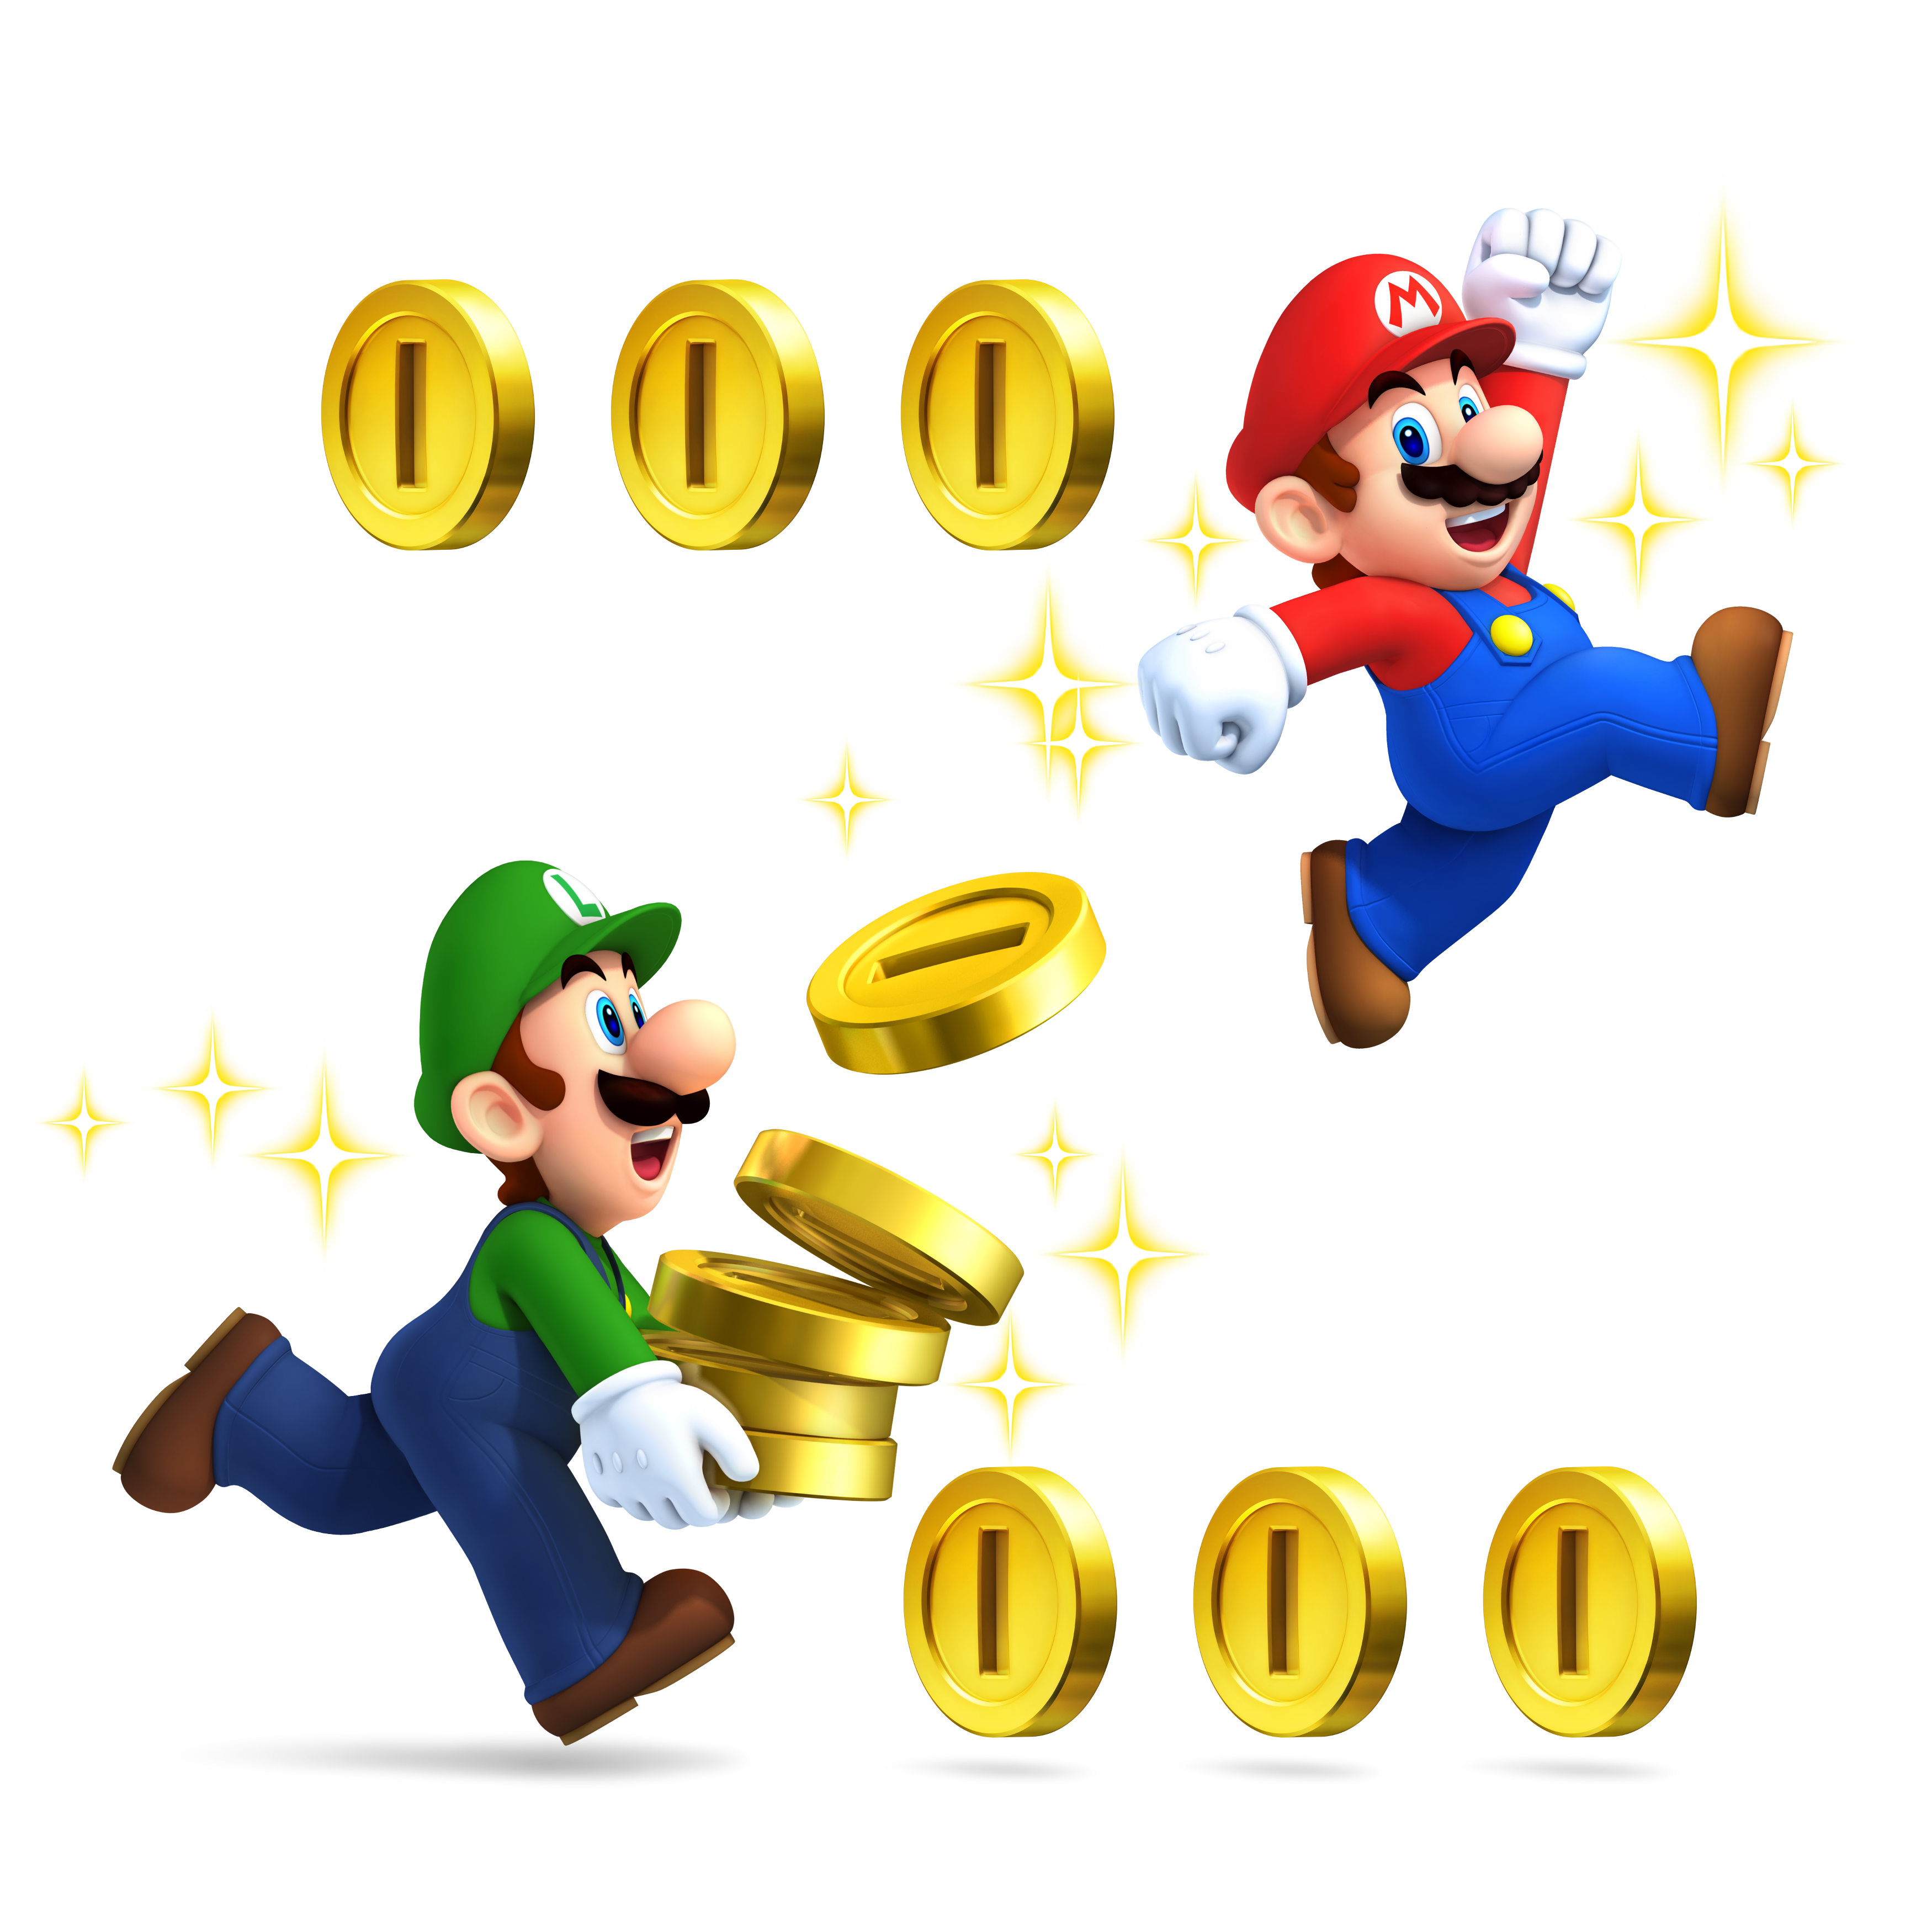 3ds_newmario2_2_char01_e3.png